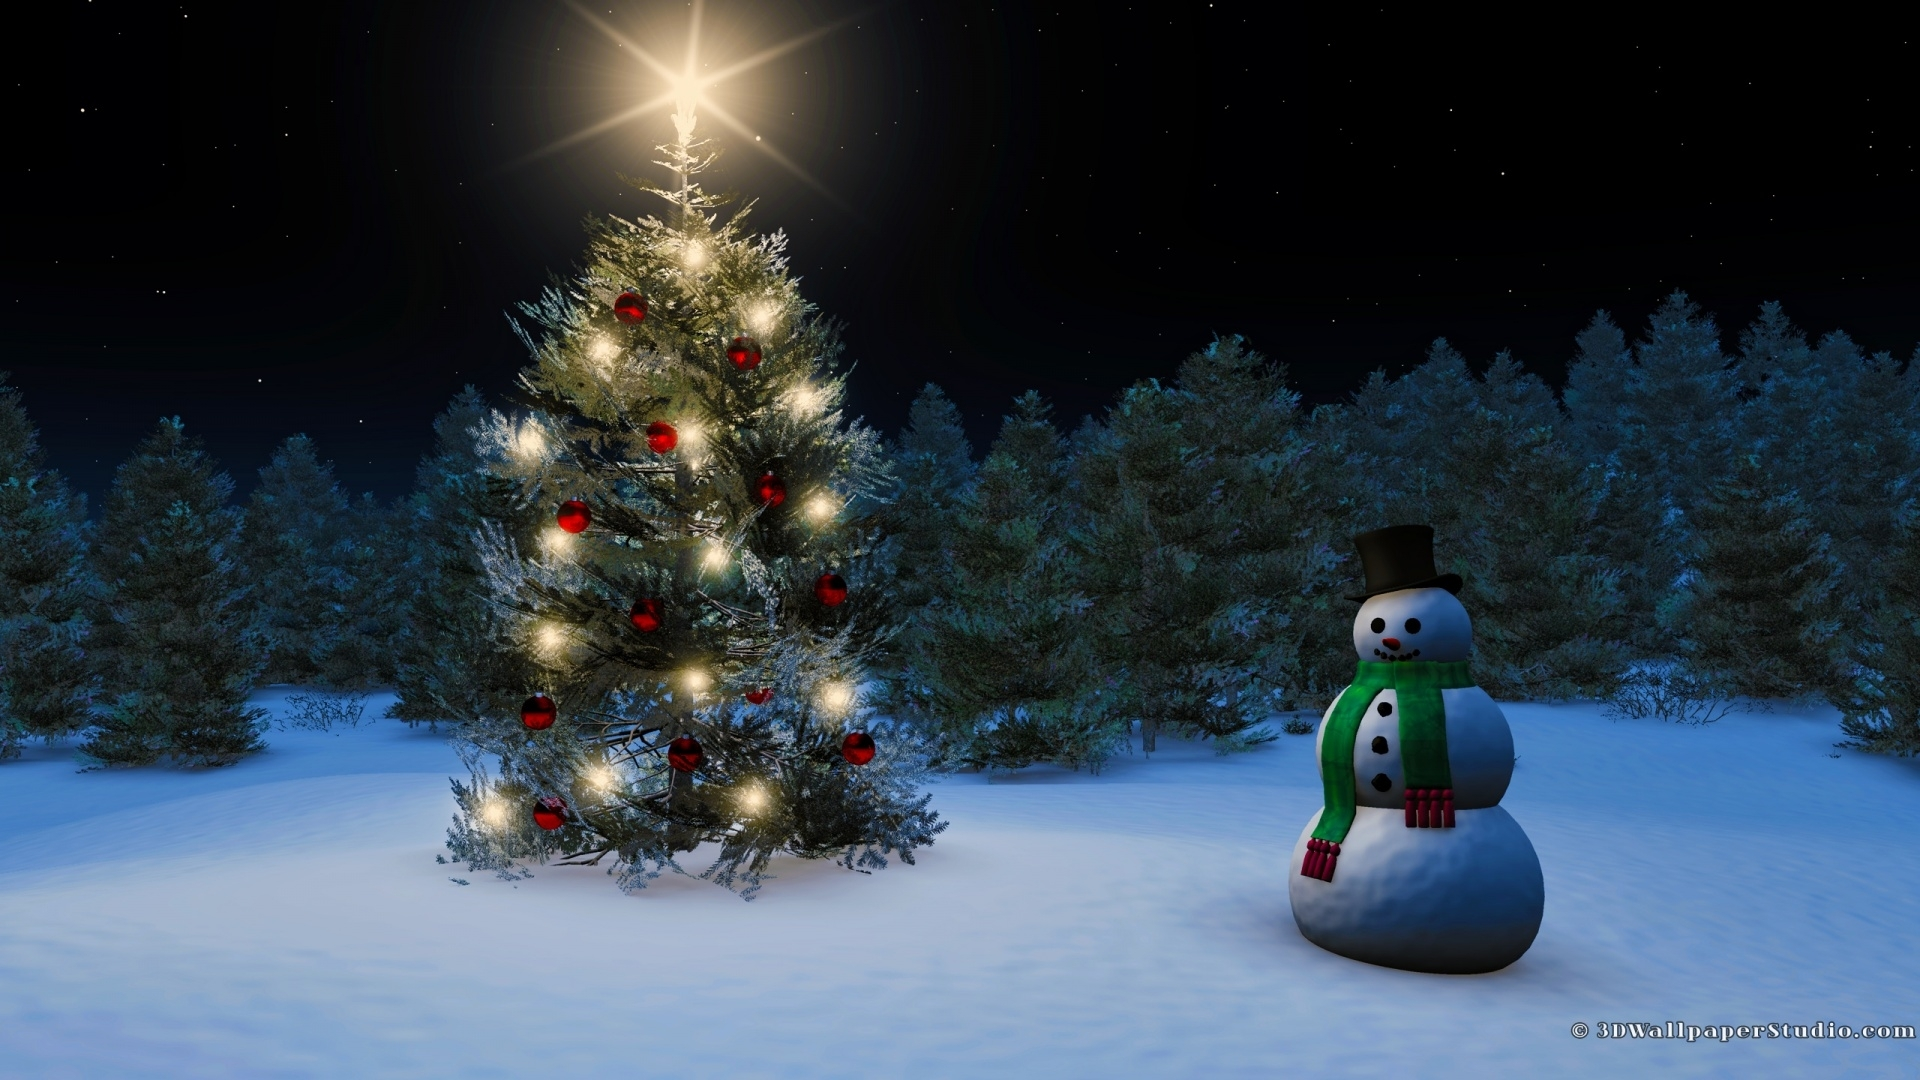 Title V44 Hd Christmas Wallpaper 1920x1080 Images Of Dimension 1920 X 1080 File Type JPG JPEG